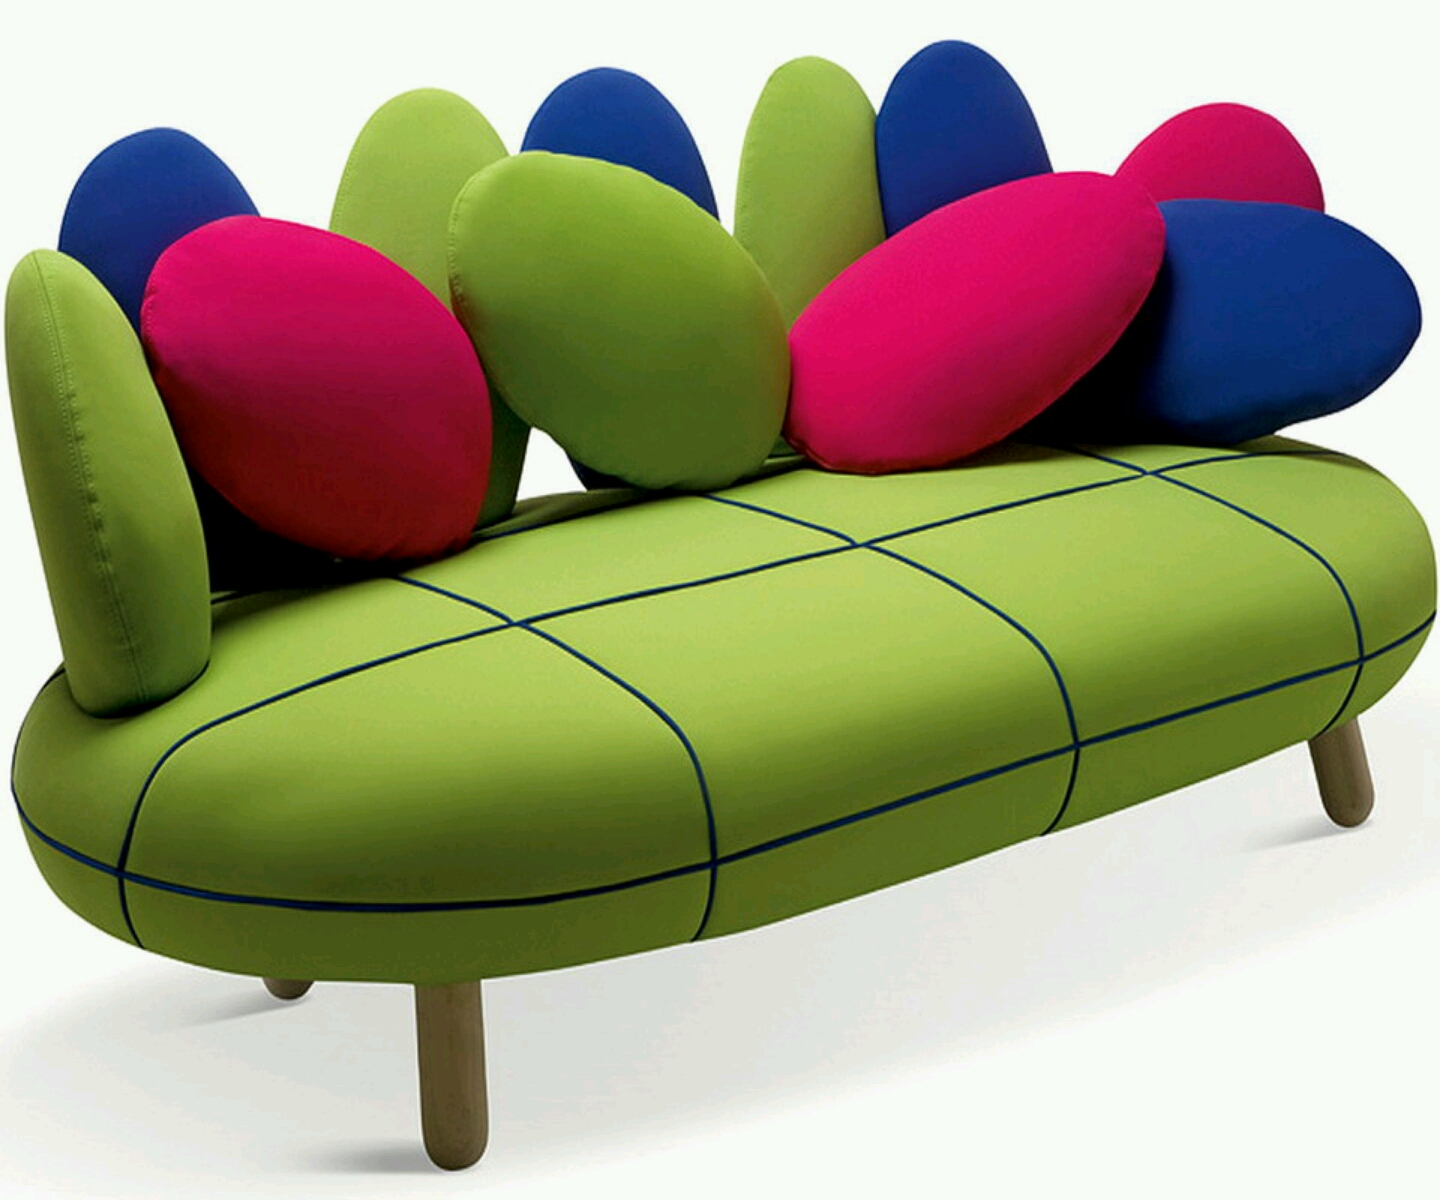 Beautiful Sofa Designs modern beautiful colourful sofa designs. | best design home